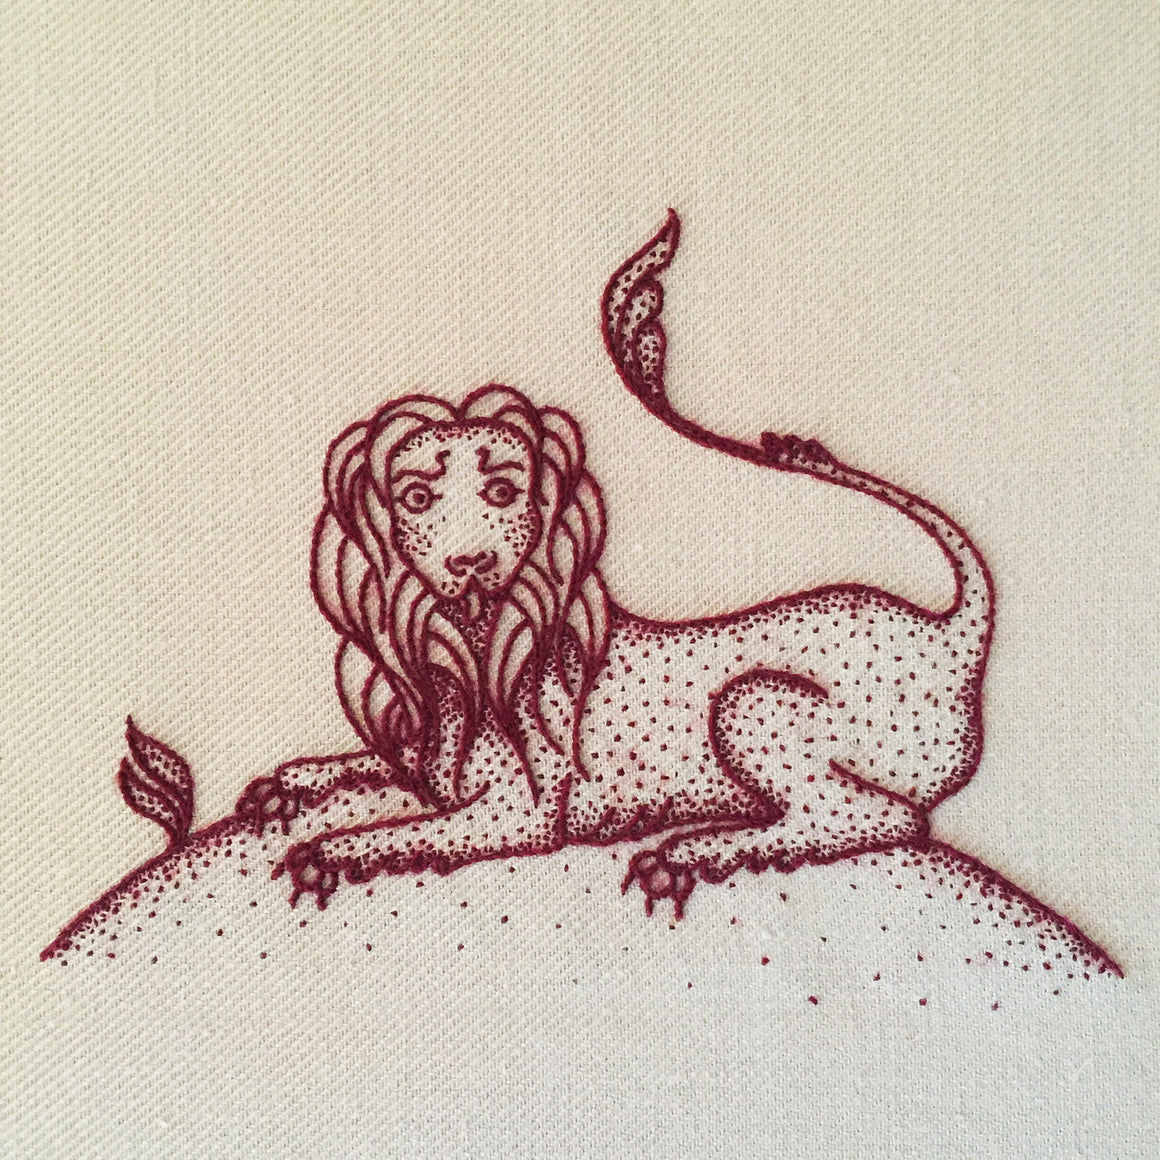 Heritage Lion Jacobean Crewel Embroidery Kit